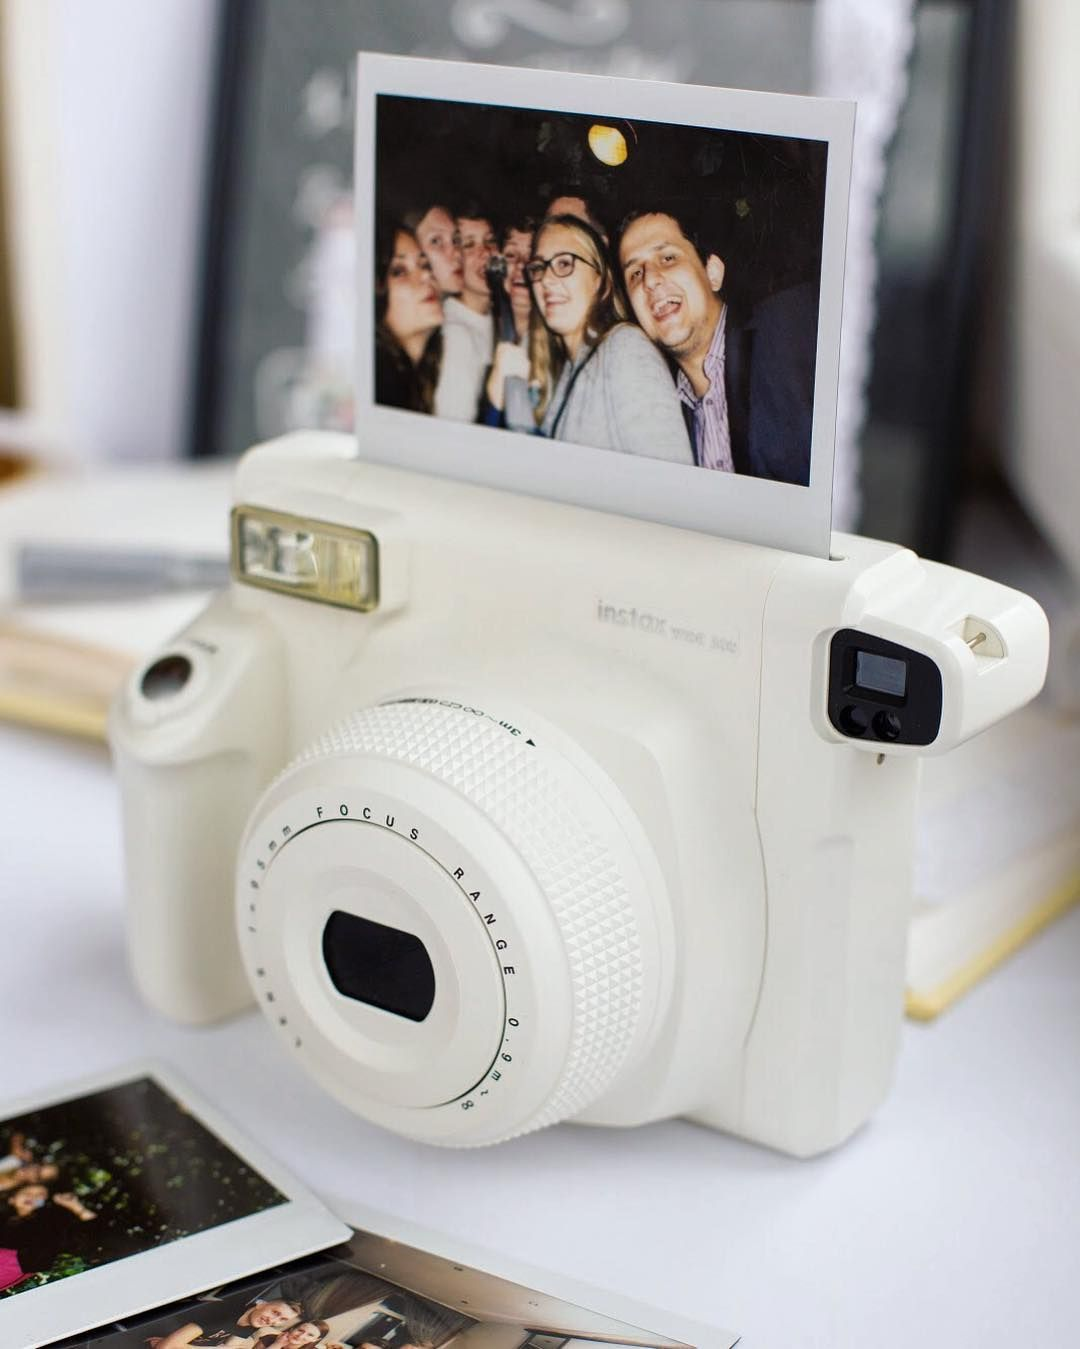 e081ec2a453 Instax Wide camera for capturing all the best Wedding memories!  Polaroid   PolaroidWedding  Wedding  WeddingIdeas  Instax  InstaxWide